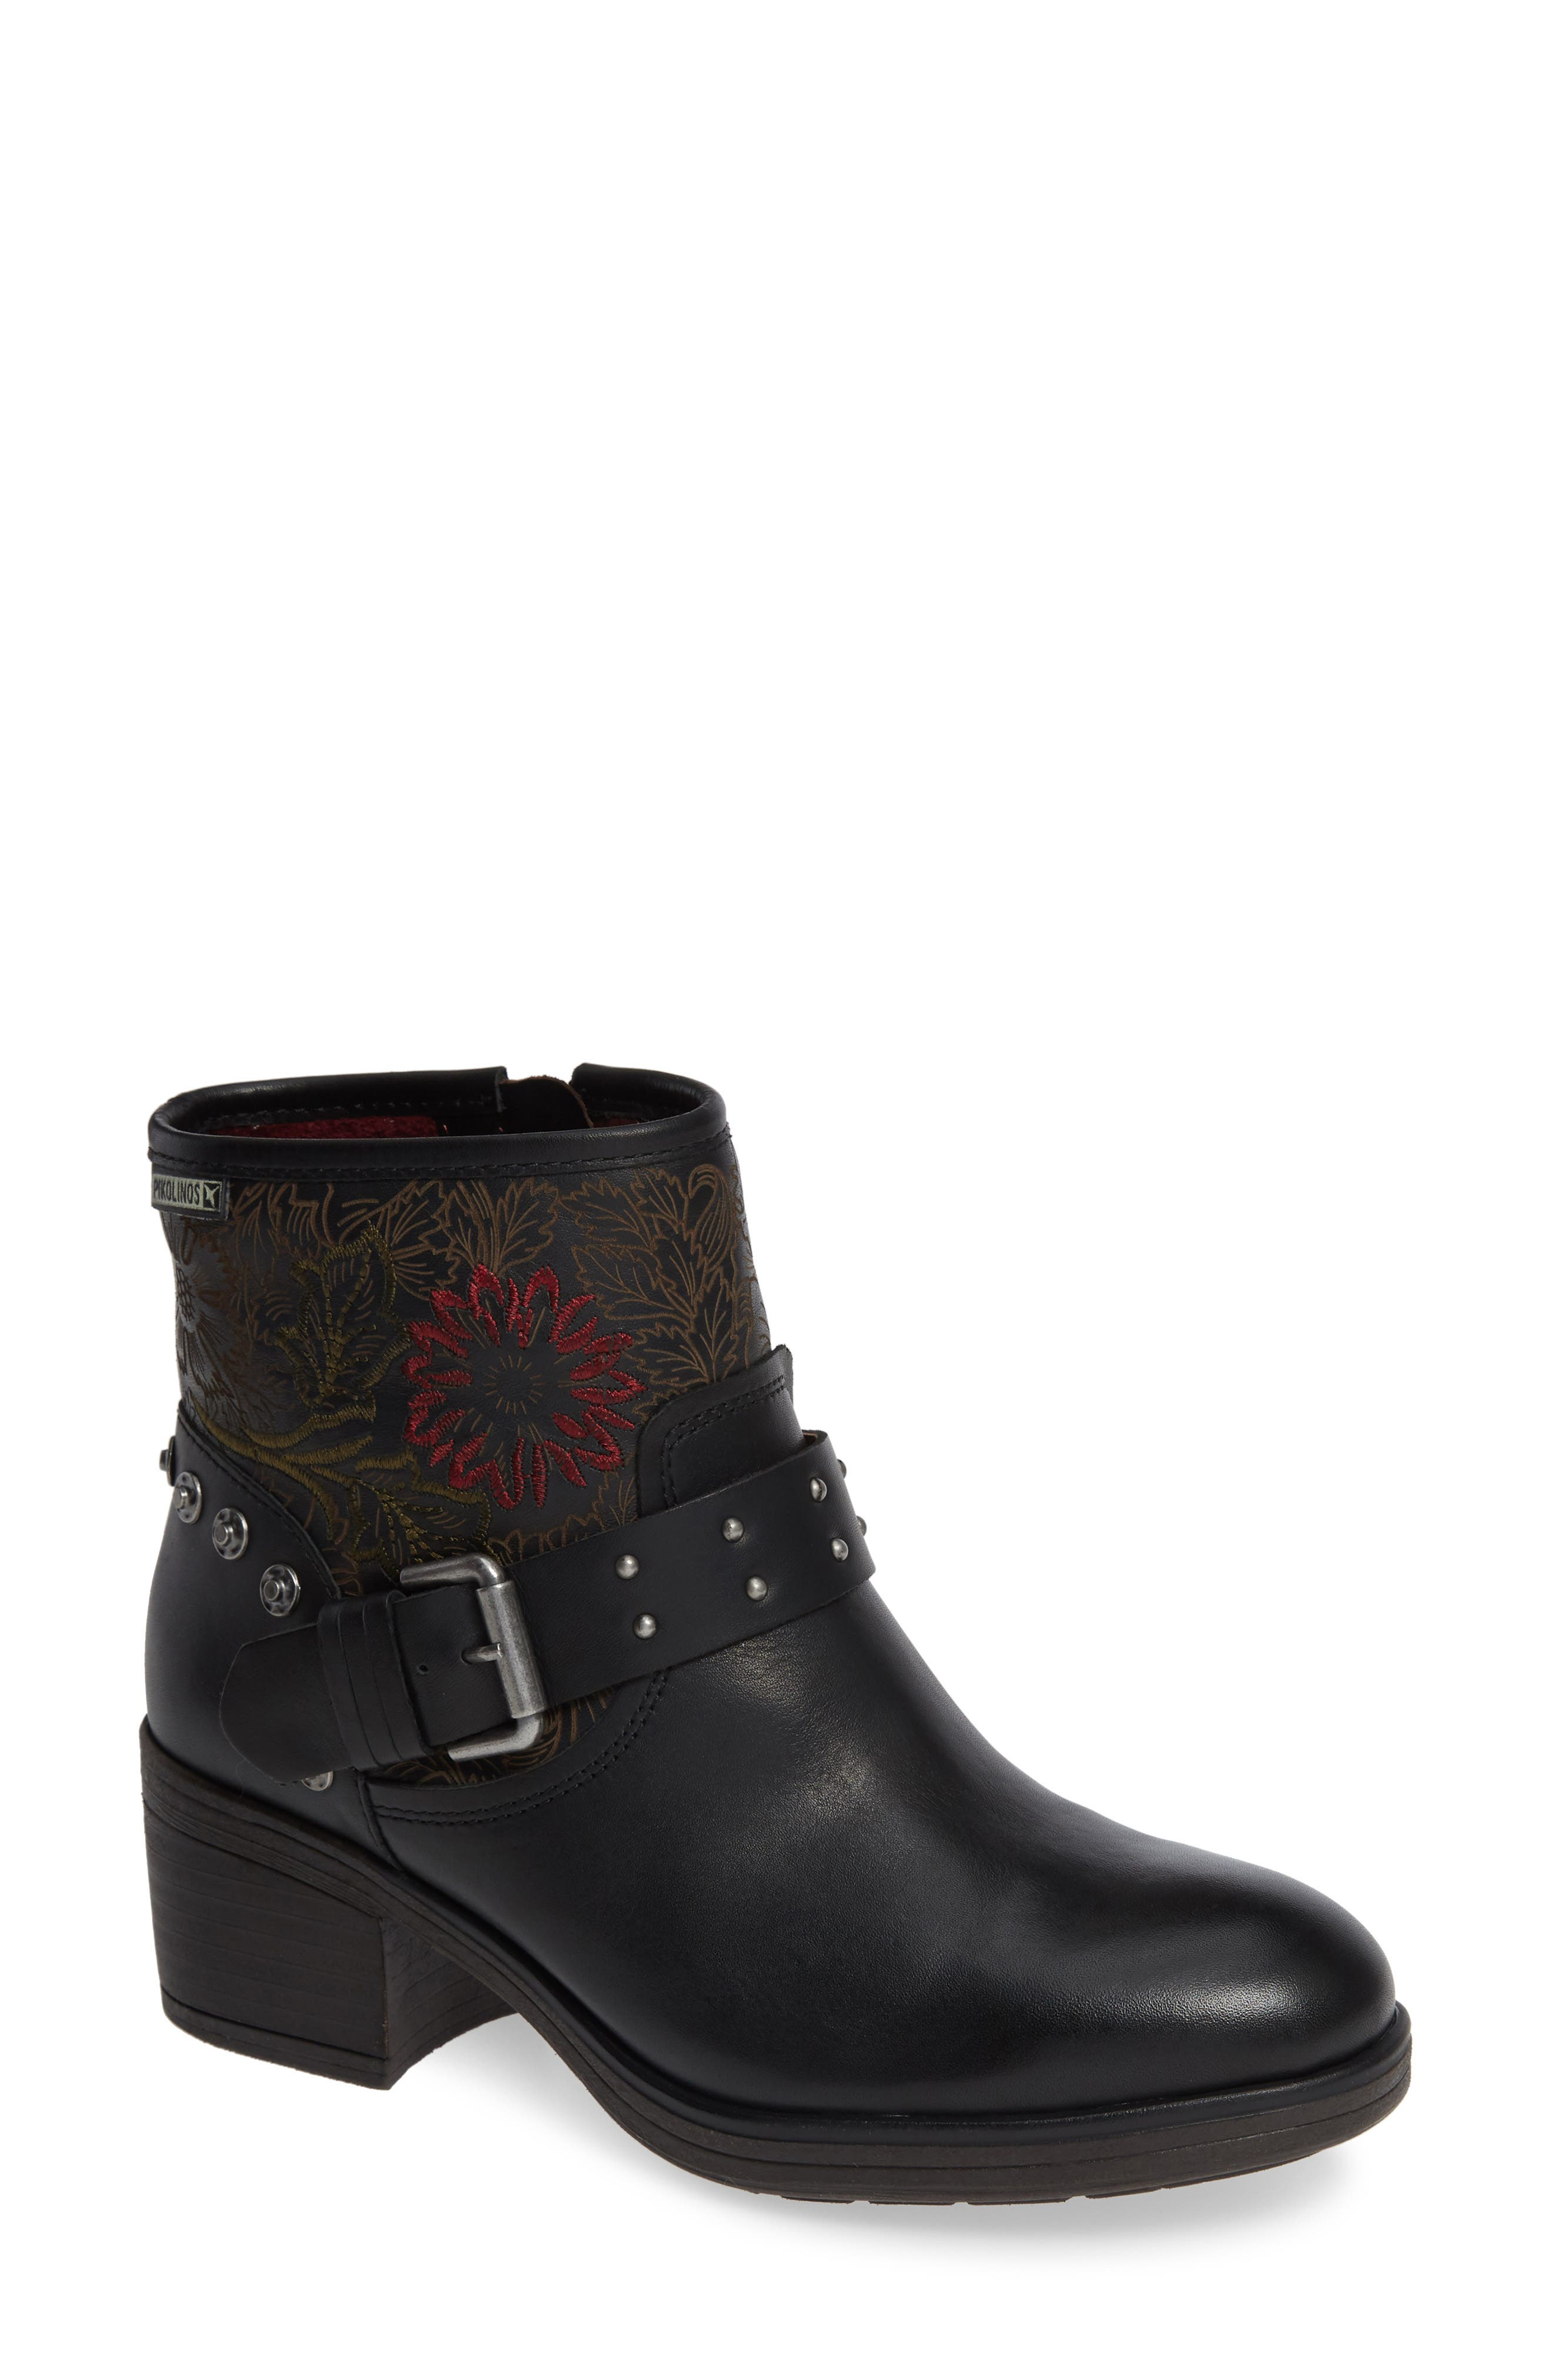 Lyon Embroidered Engineer Bootie,                             Main thumbnail 1, color,                             BLACK LEATHER